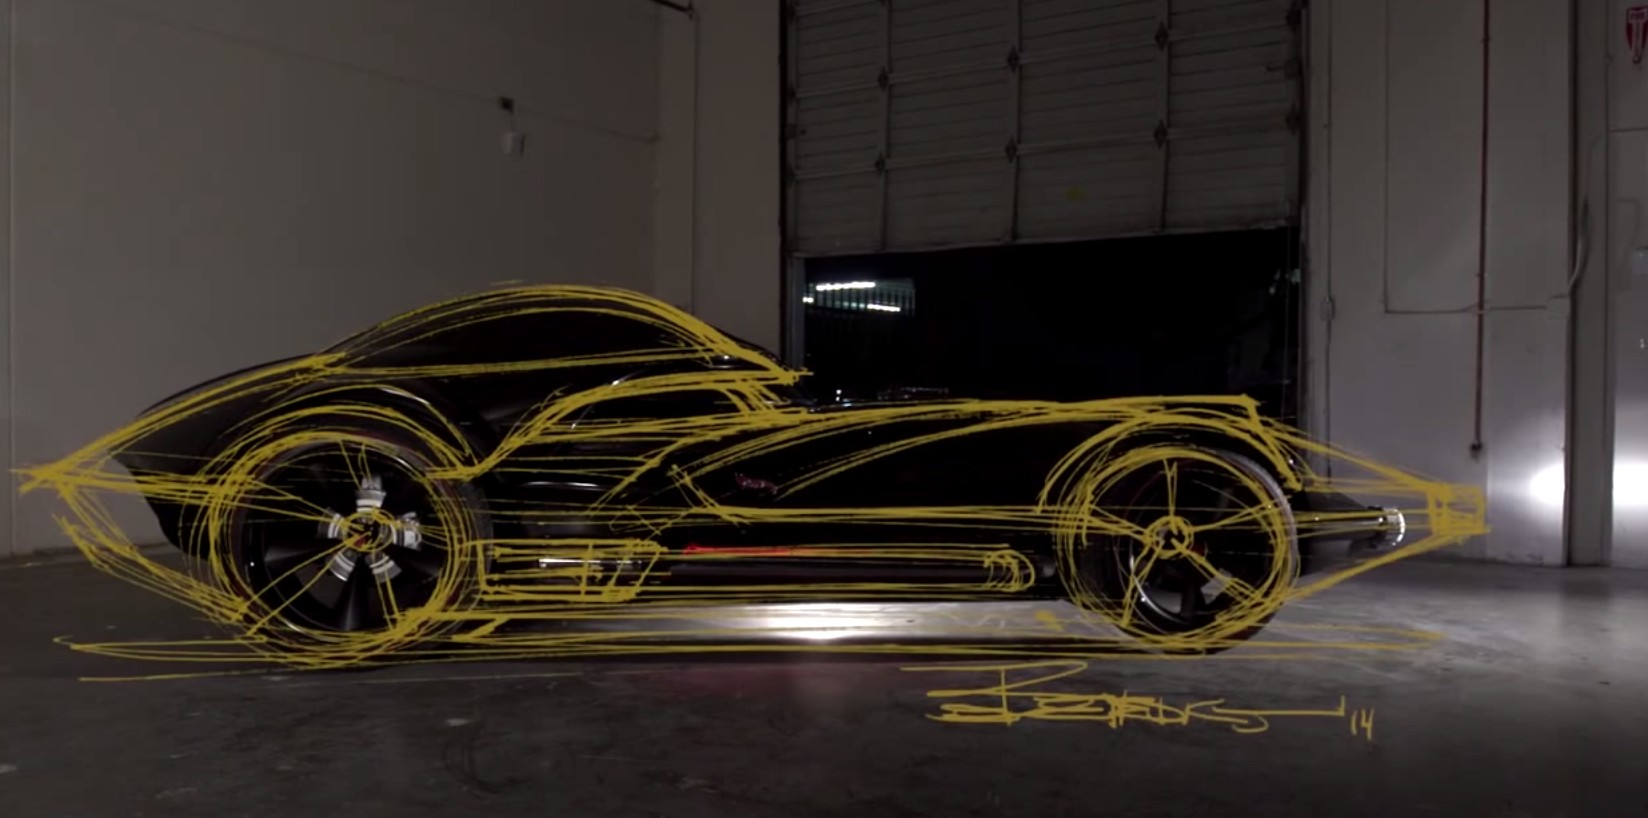 How The Darth Vader Hot Wheels Car Was Made: Video